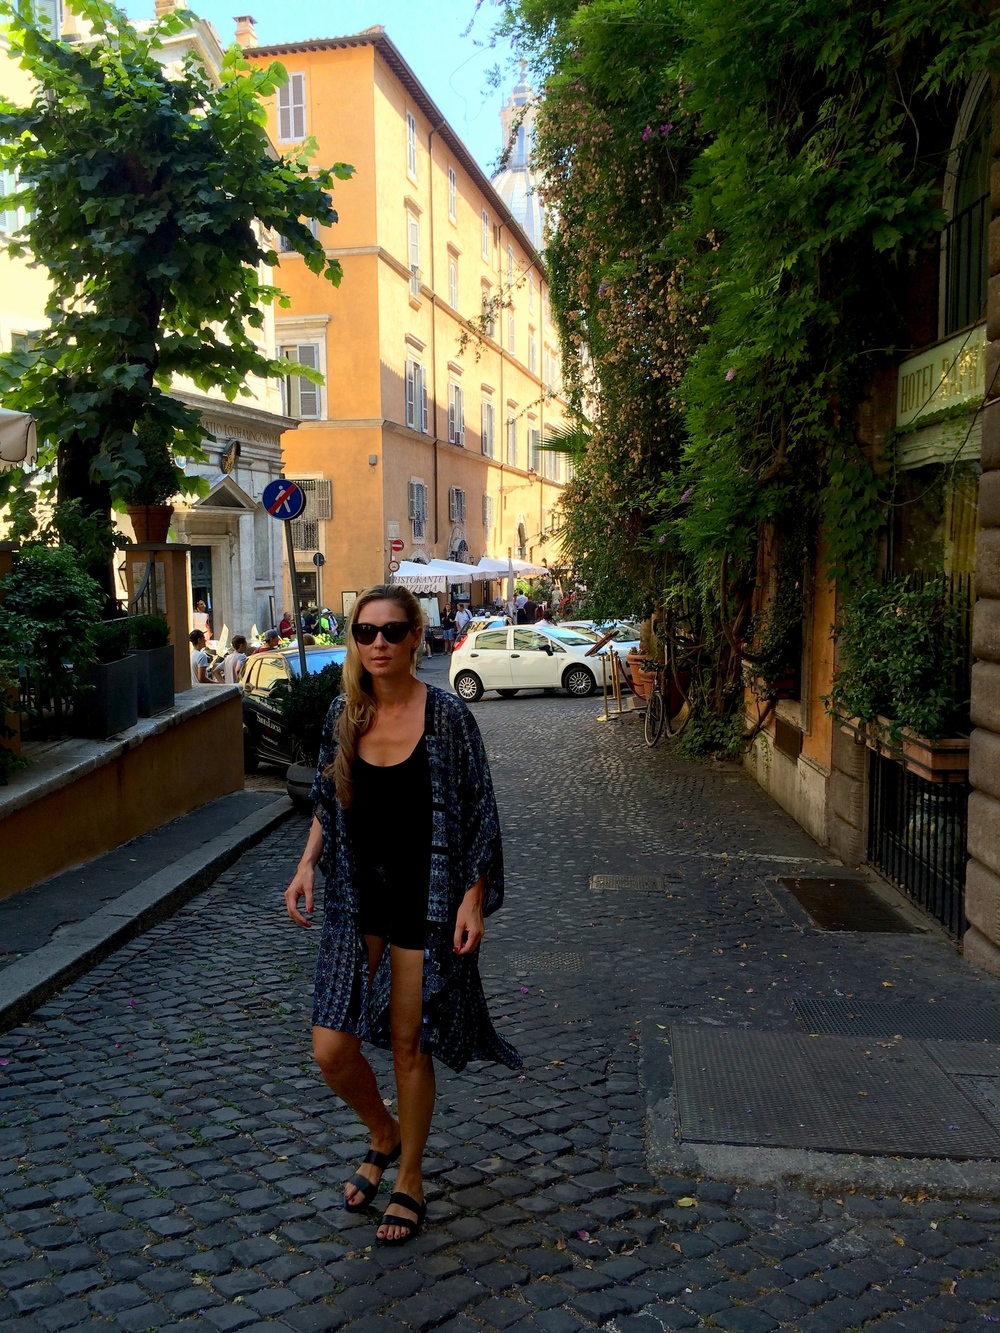 Wearing made-to-fit Capri sandals in Rome.